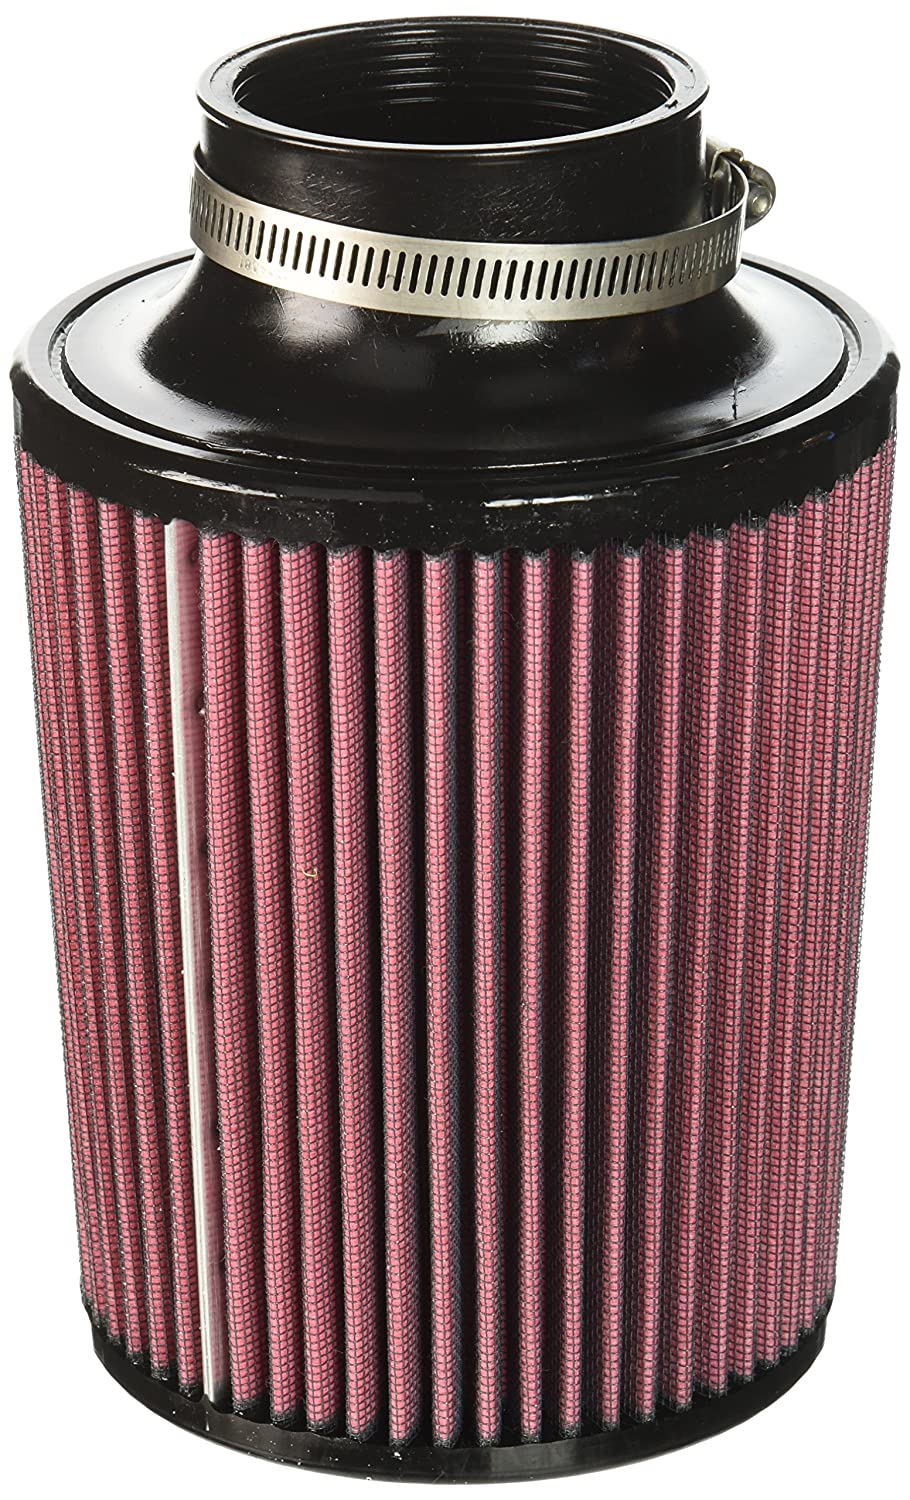 Mishimoto MMAF-2757 Performance Air Filter, 2.75' Inlet, 7' Filter Length, Red 2.75 Inlet 7 Filter Length